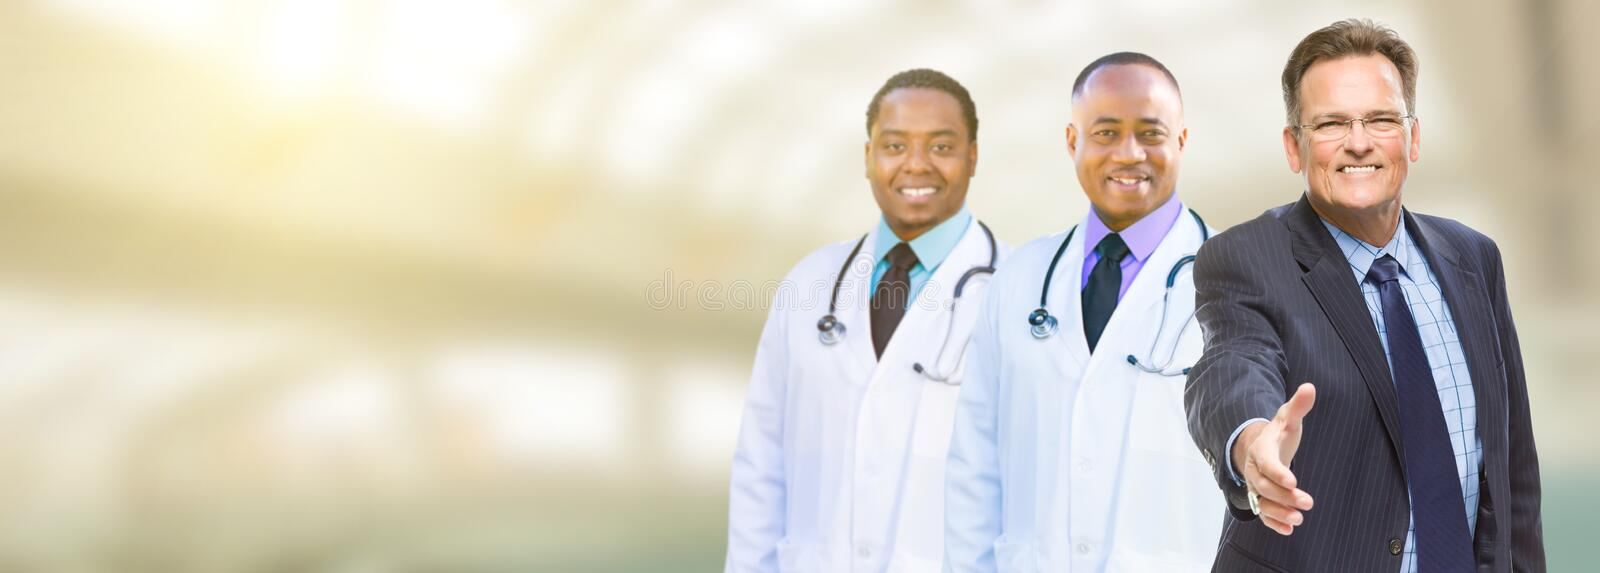 Caucasian Businessman and African American Male Doctors, Nurses royalty free stock image